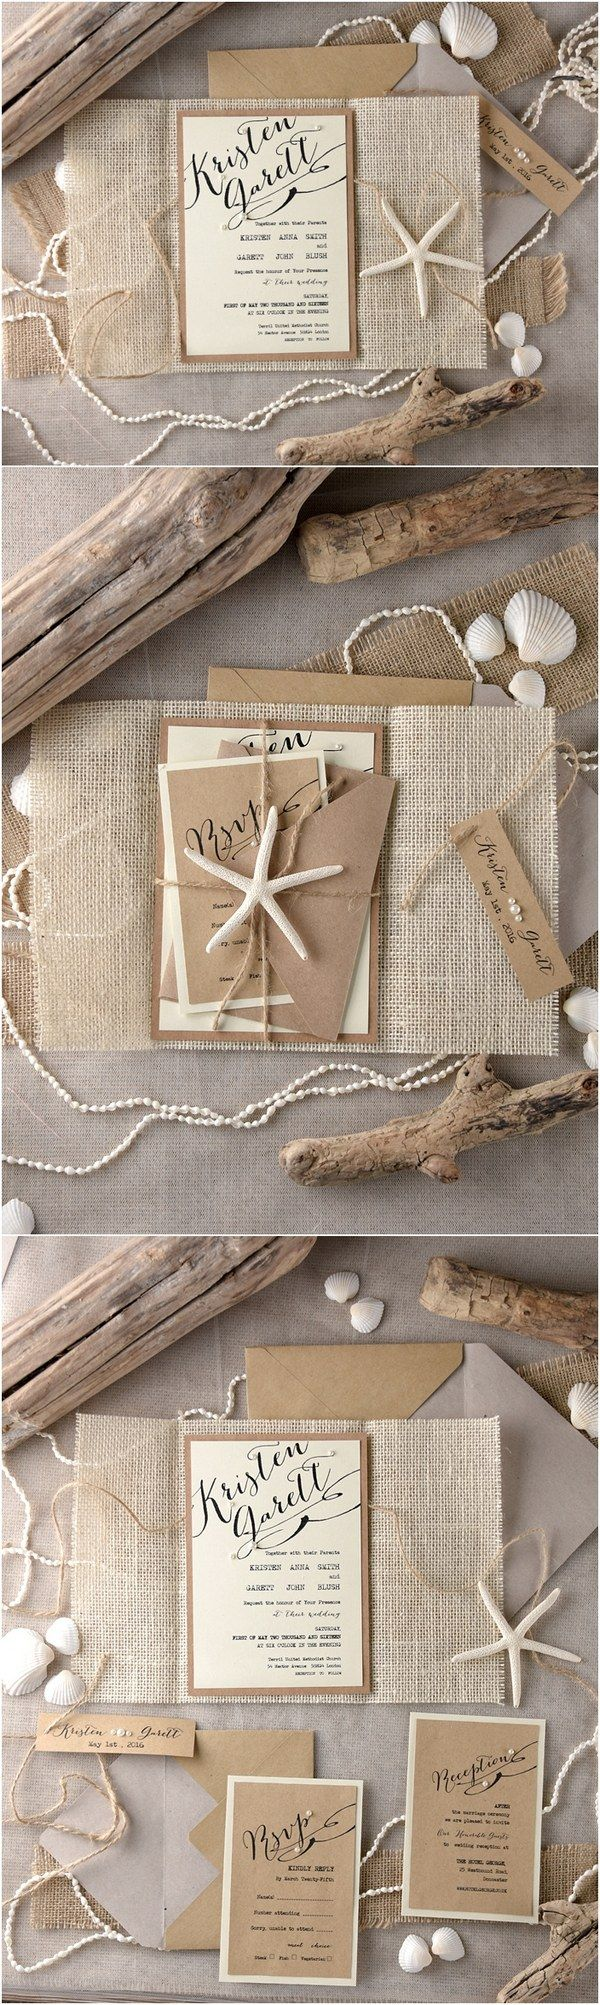 Ideas Bed Bath And Beyond Wedding Invitations 1000 ideas about destination wedding invitations on pinterest rustic country burlap beach 4lovepolkadots